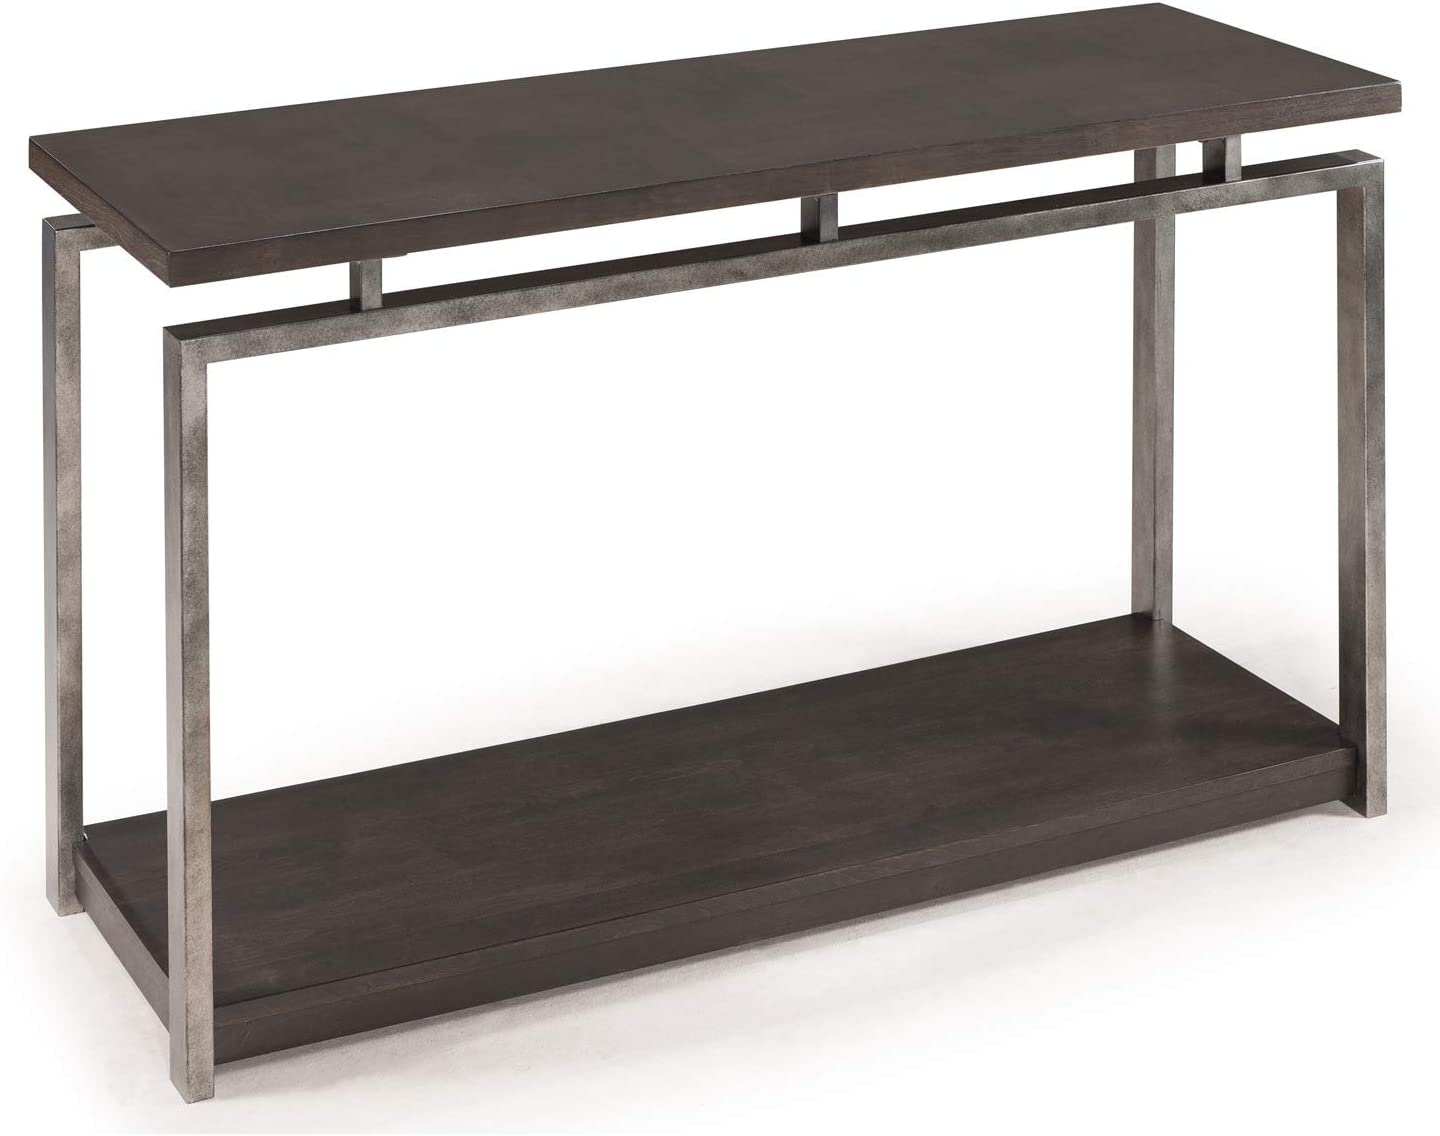 Magnussen T2535 Alton Rectangular Sofa Table.